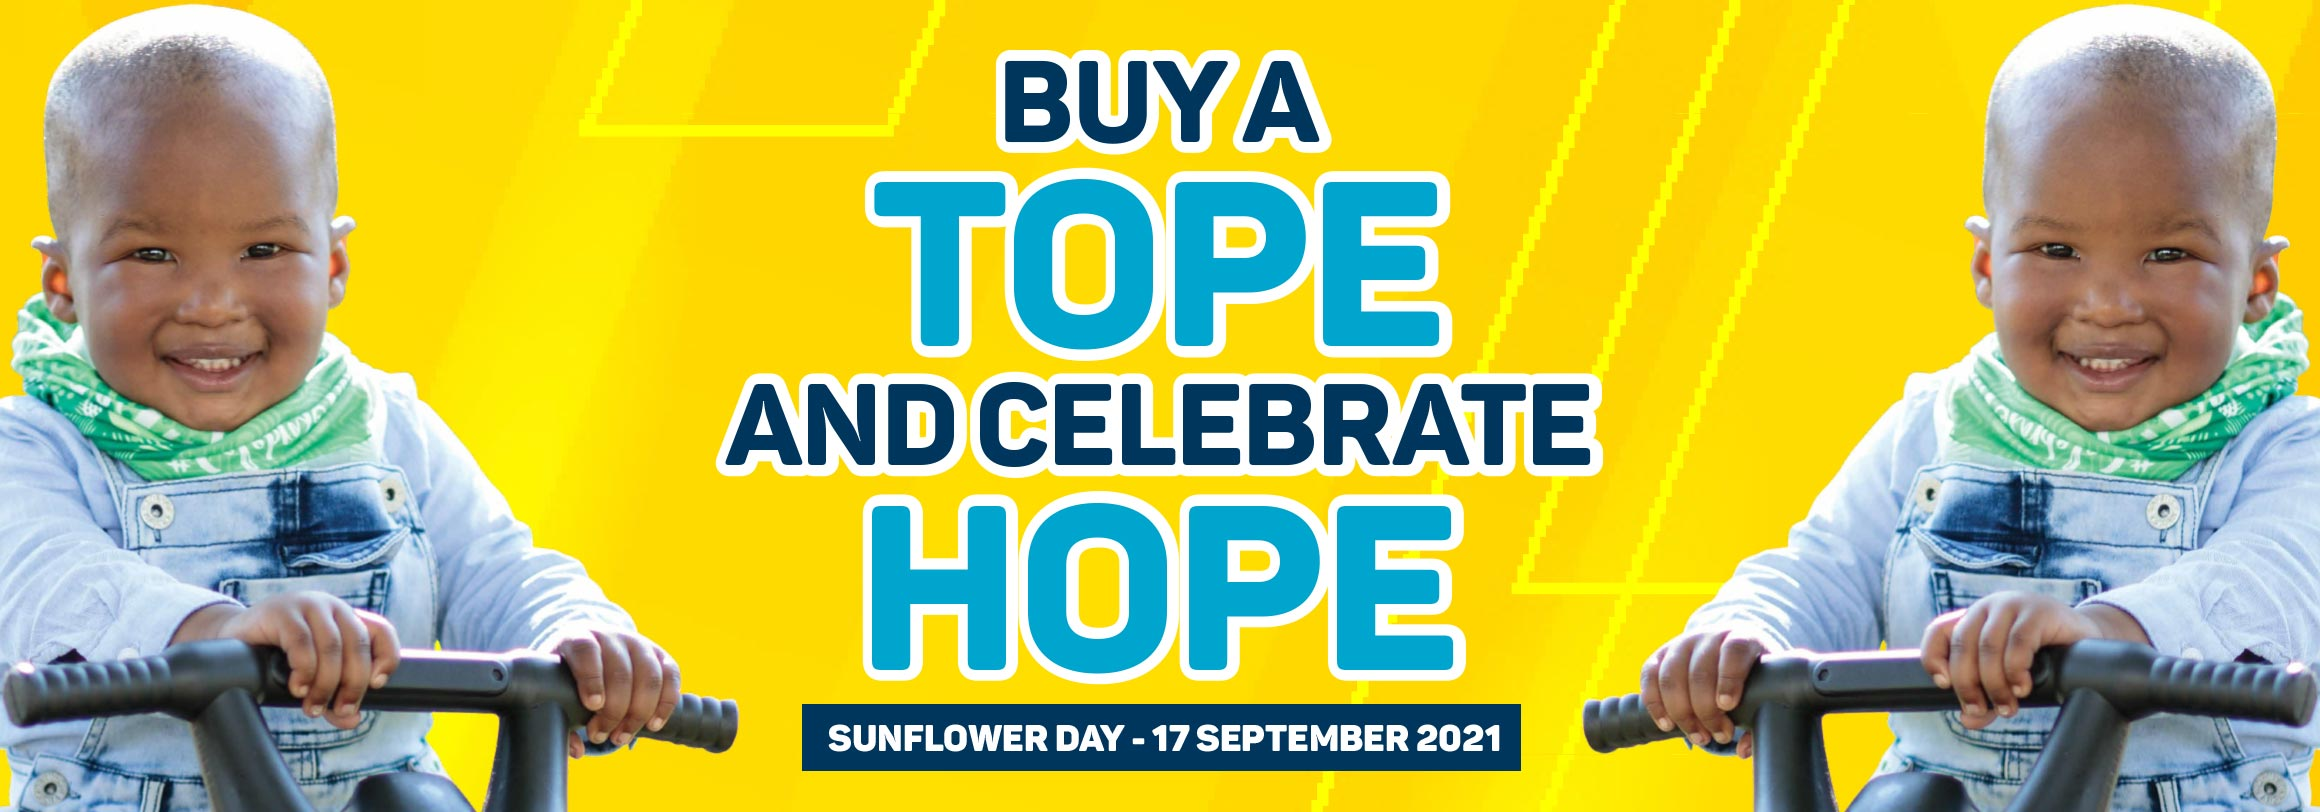 Buy a tope and celebrate hope. Sunflower day -17 September 2021